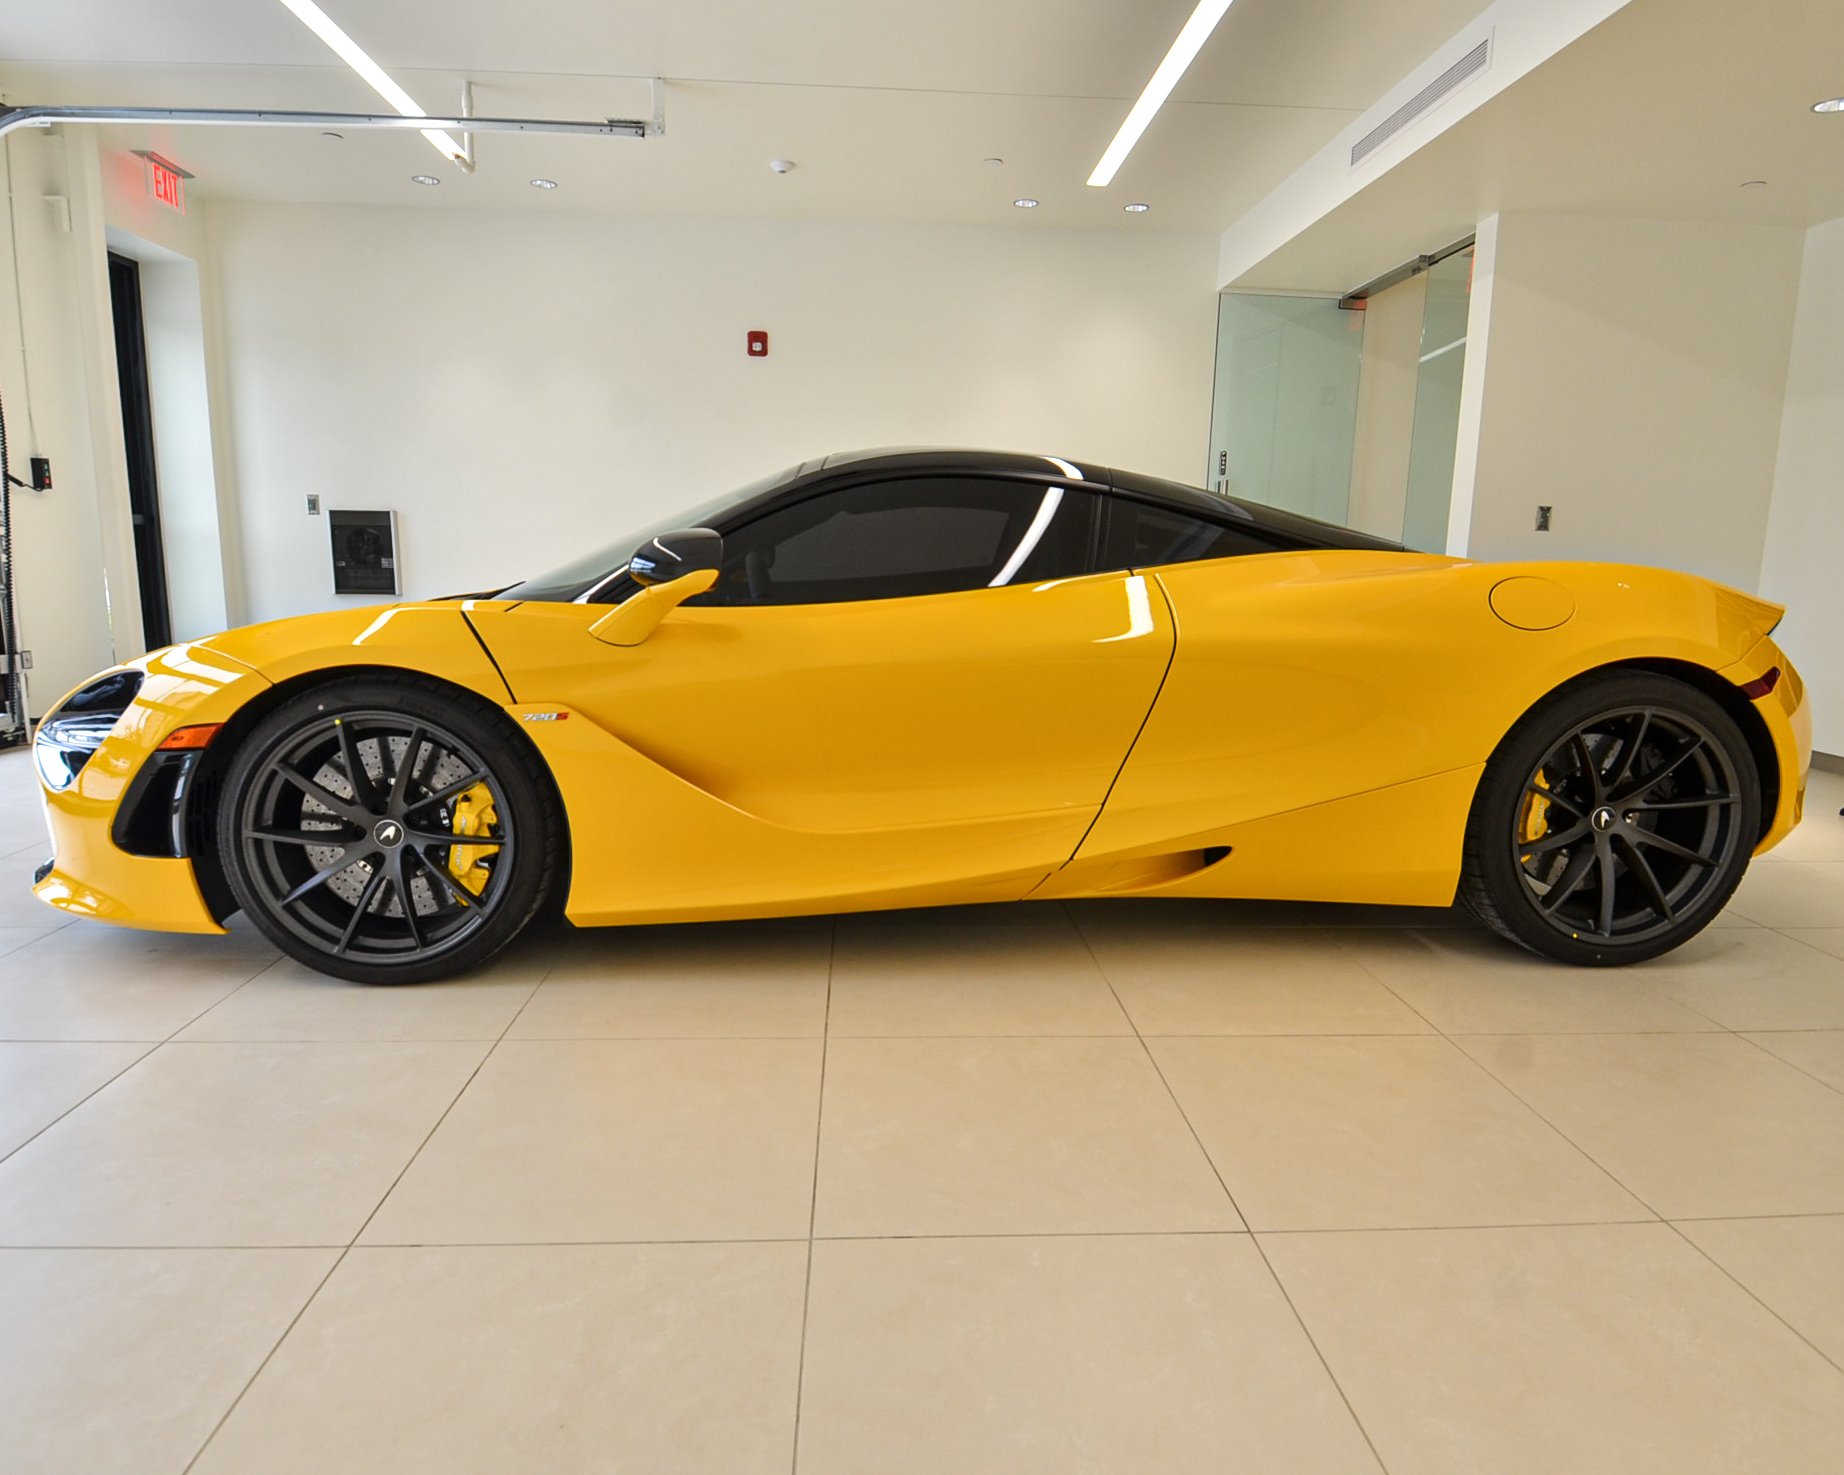 Uploads 2f08 yellow 720s.jpg   1560352022036   gr6xe3jyvw   vehicleimage   333511   08 yellow 720s